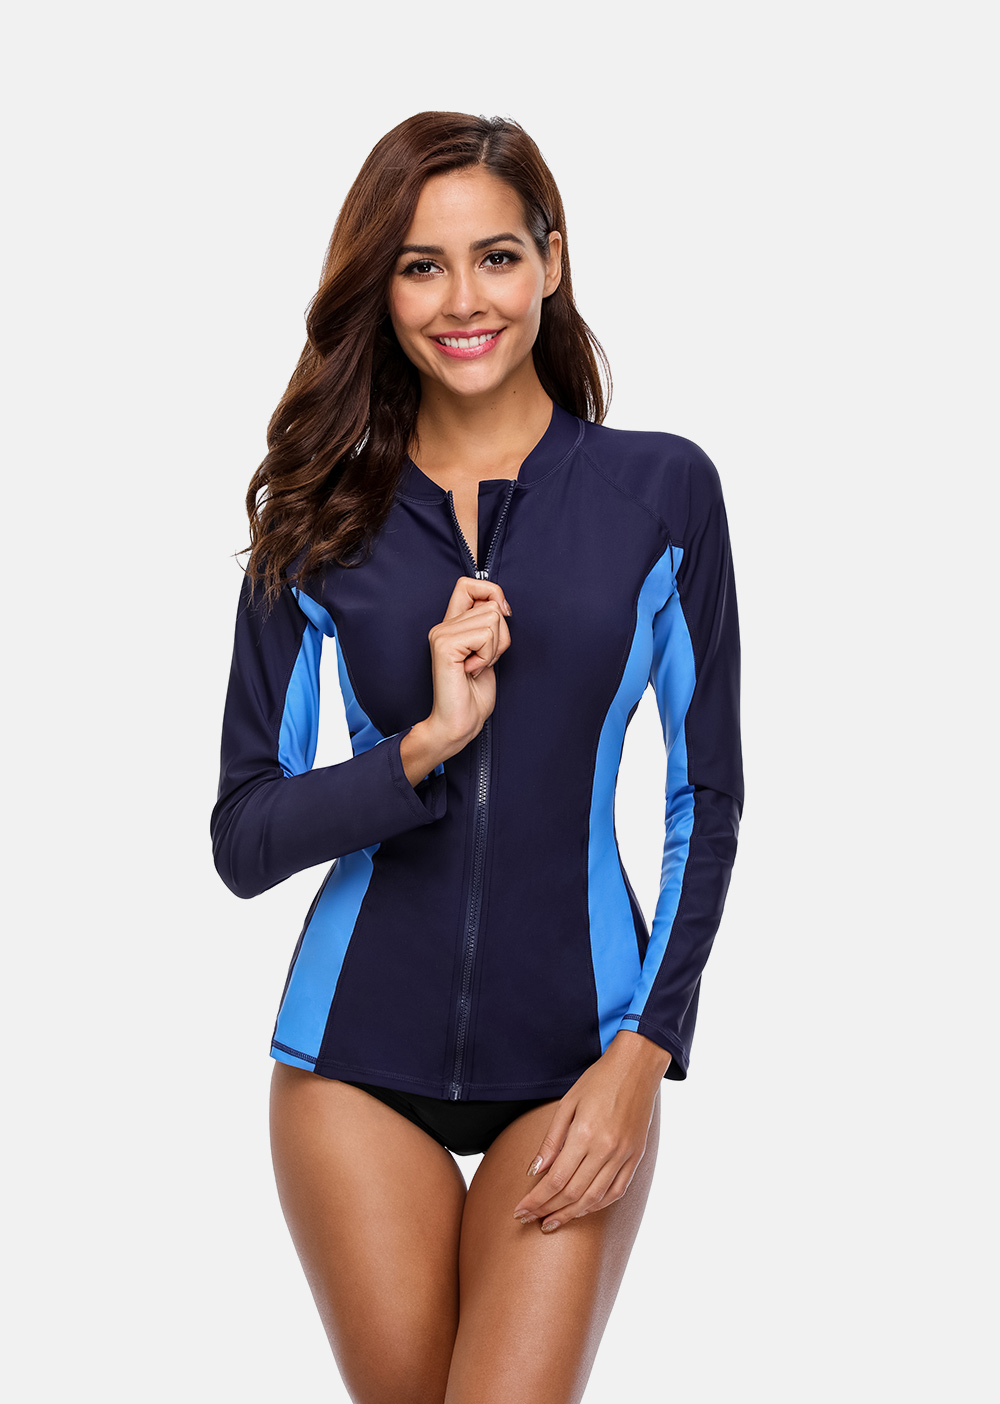 surf superior rash guard zíper upf50 +